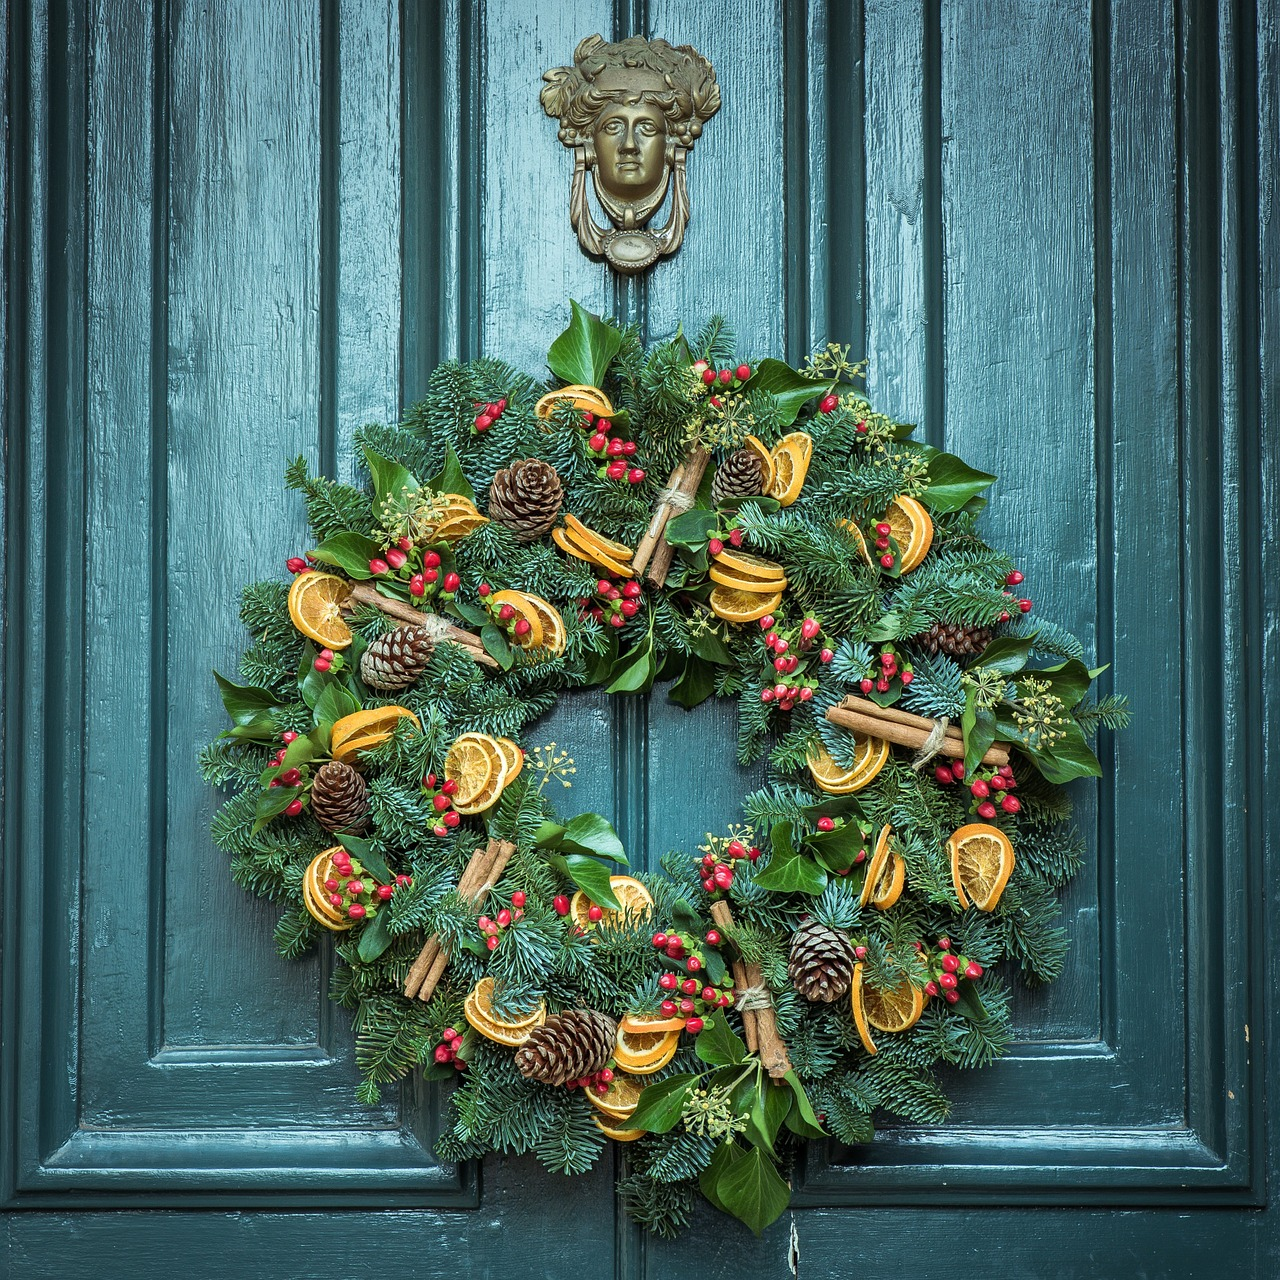 Your Home, Your Holiday: It's About the Wreaths